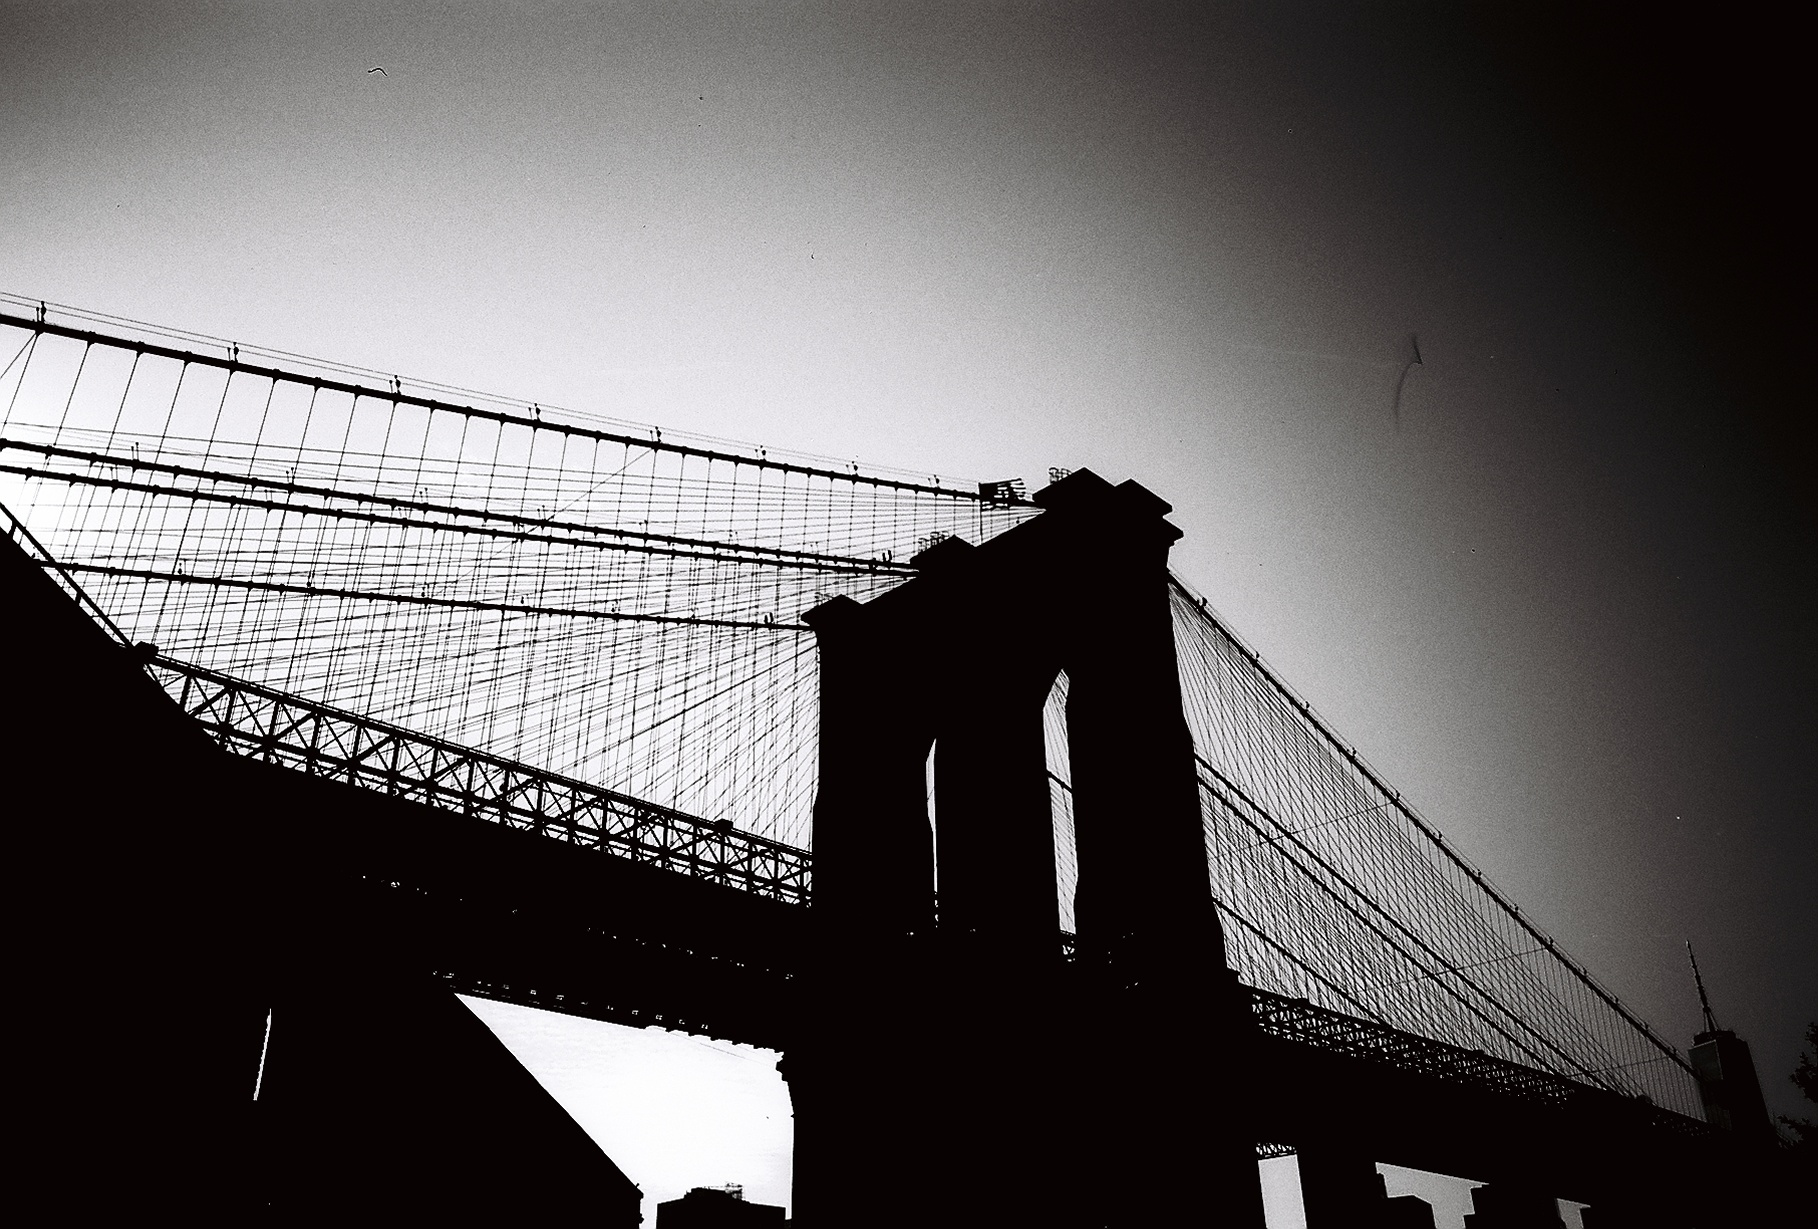 Silhouette of bridge (Pic: Dannah Gottlieb)